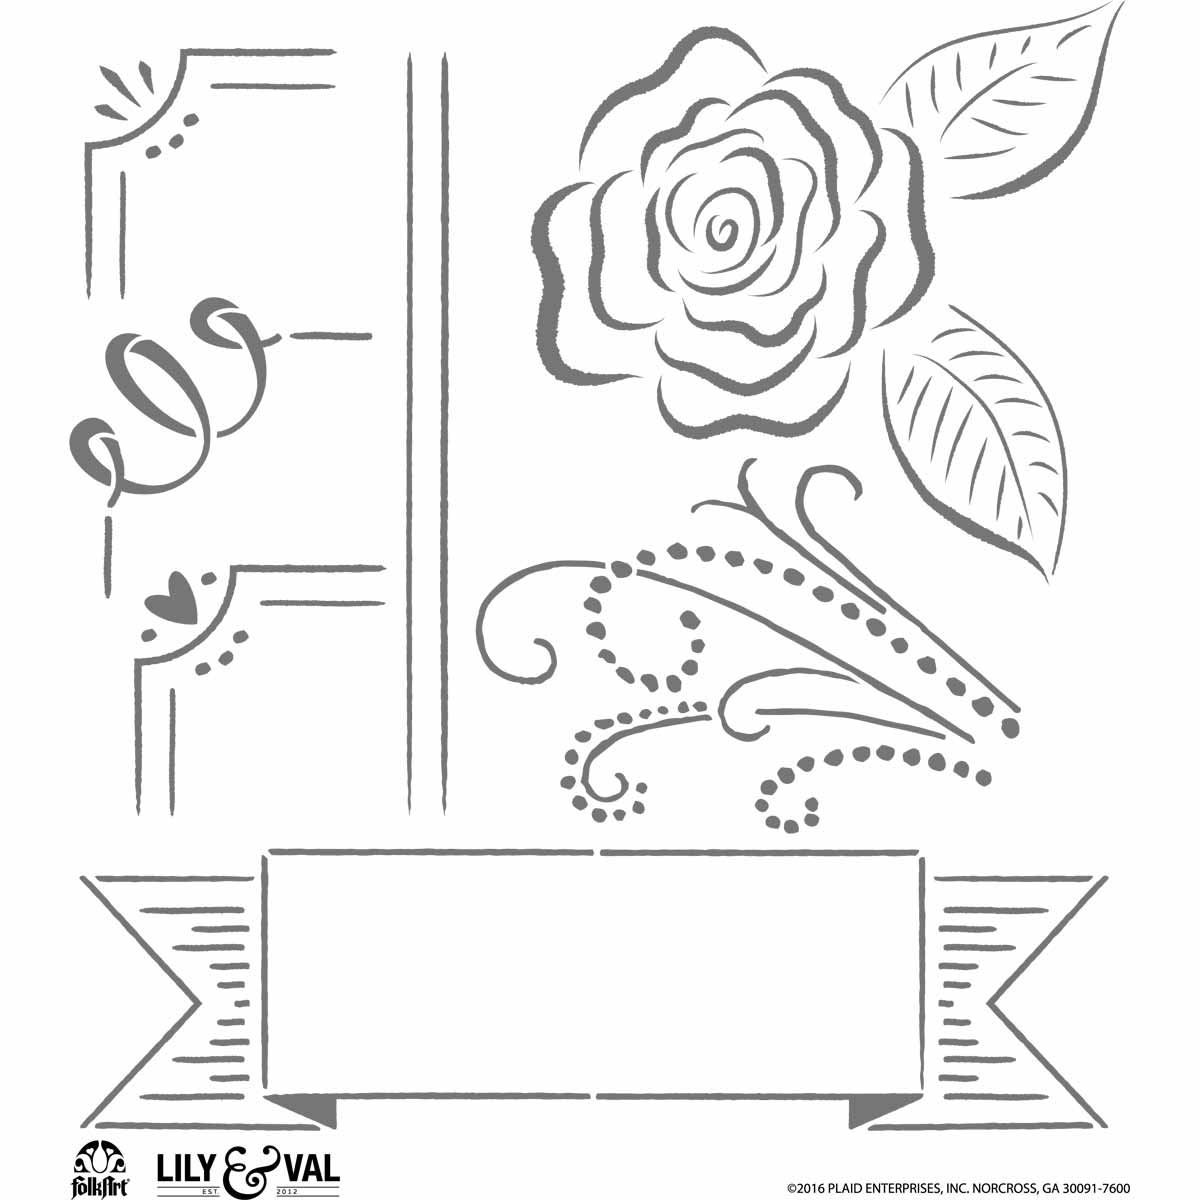 FolkArt ® Lily & Val™ Stencils - Variety Packs - Welcome